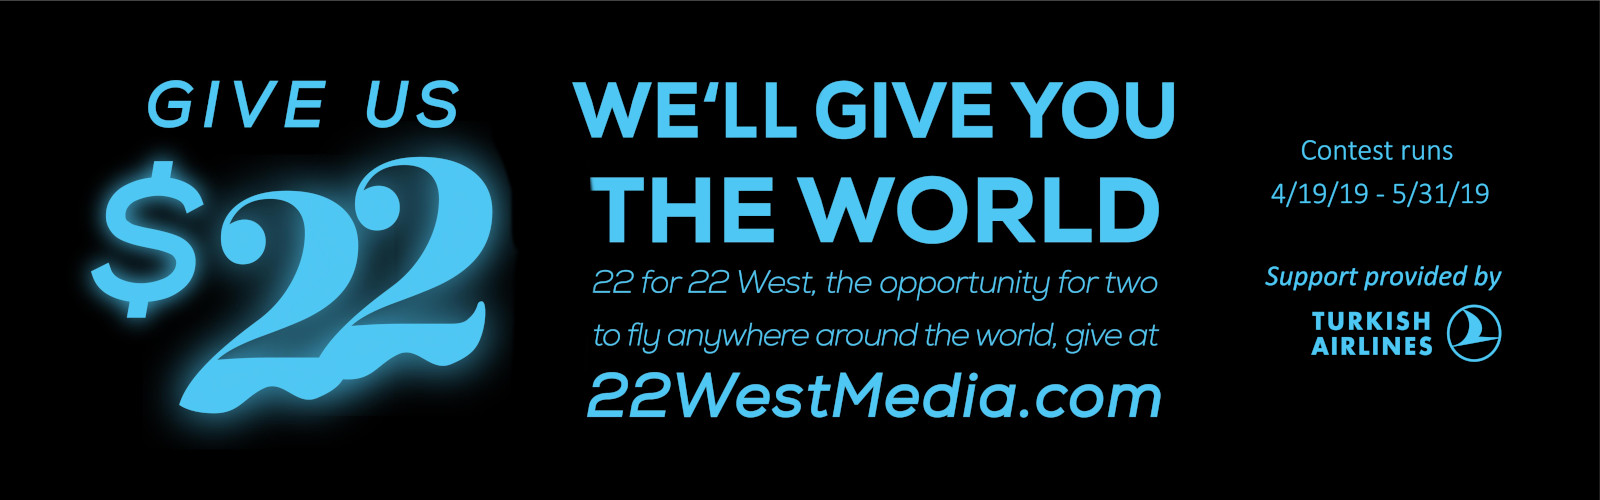 "22 West Media's 2019 ""22 for 22"" Campaign"